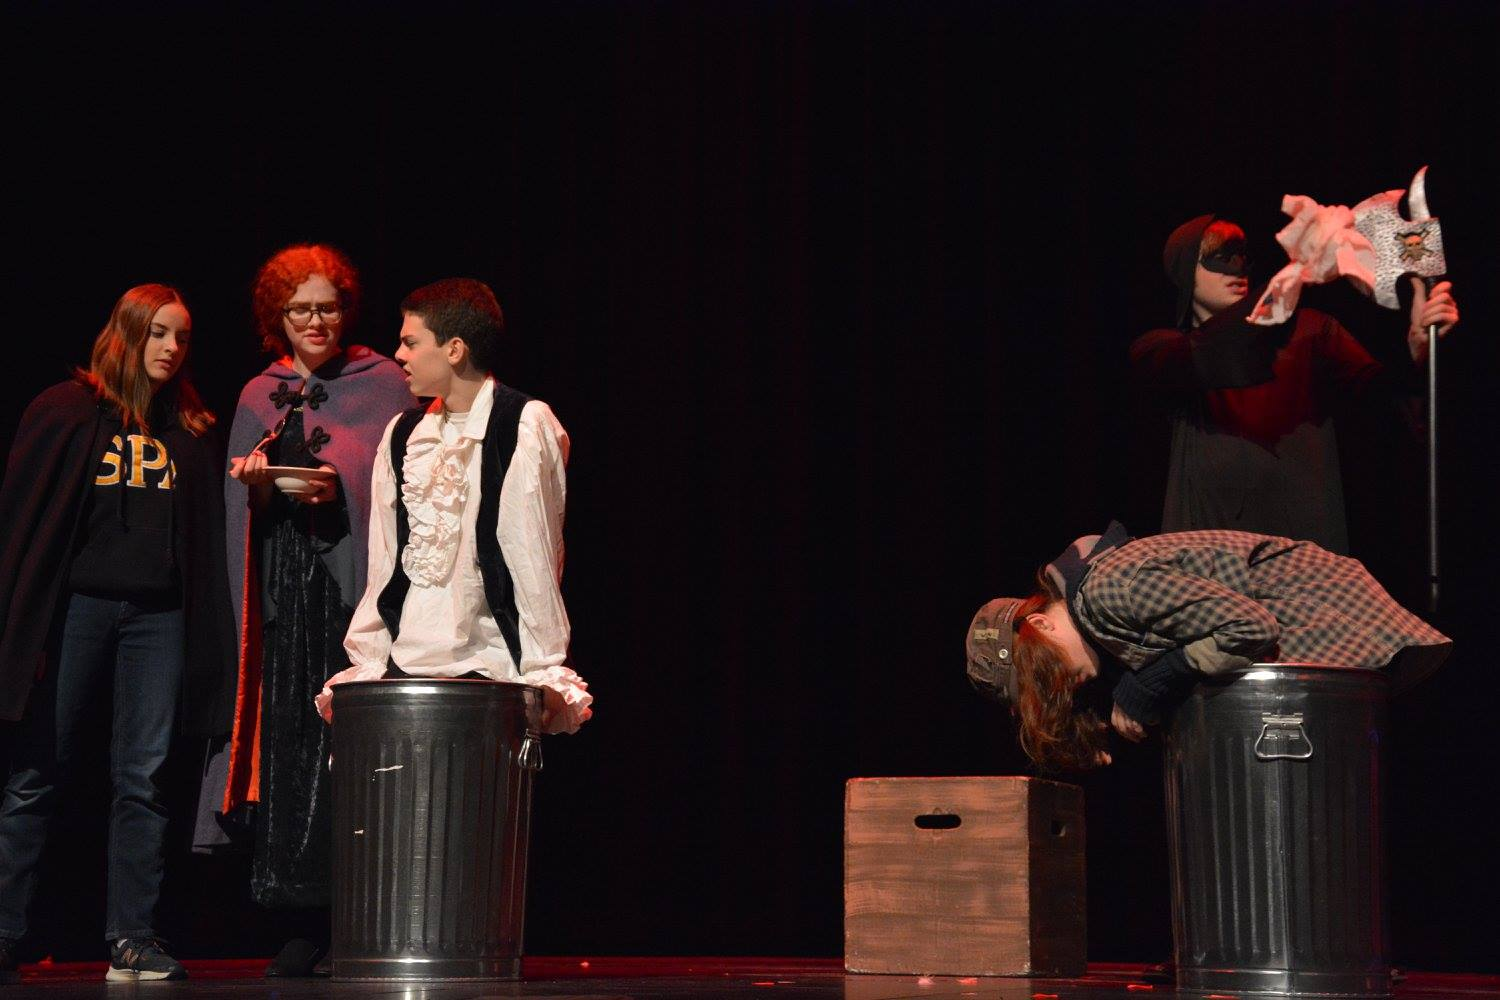 Junior+Tess+Hick%2C+junior+Lillian+Pettigrew%2C+9th+grader+Henry+Vliestra%2C+sophomore+Chloe+Morse+and+senior+Bailey+Troth+perform+in+the+Shakespeare+inspired+One+Act+on+Jan.+27.